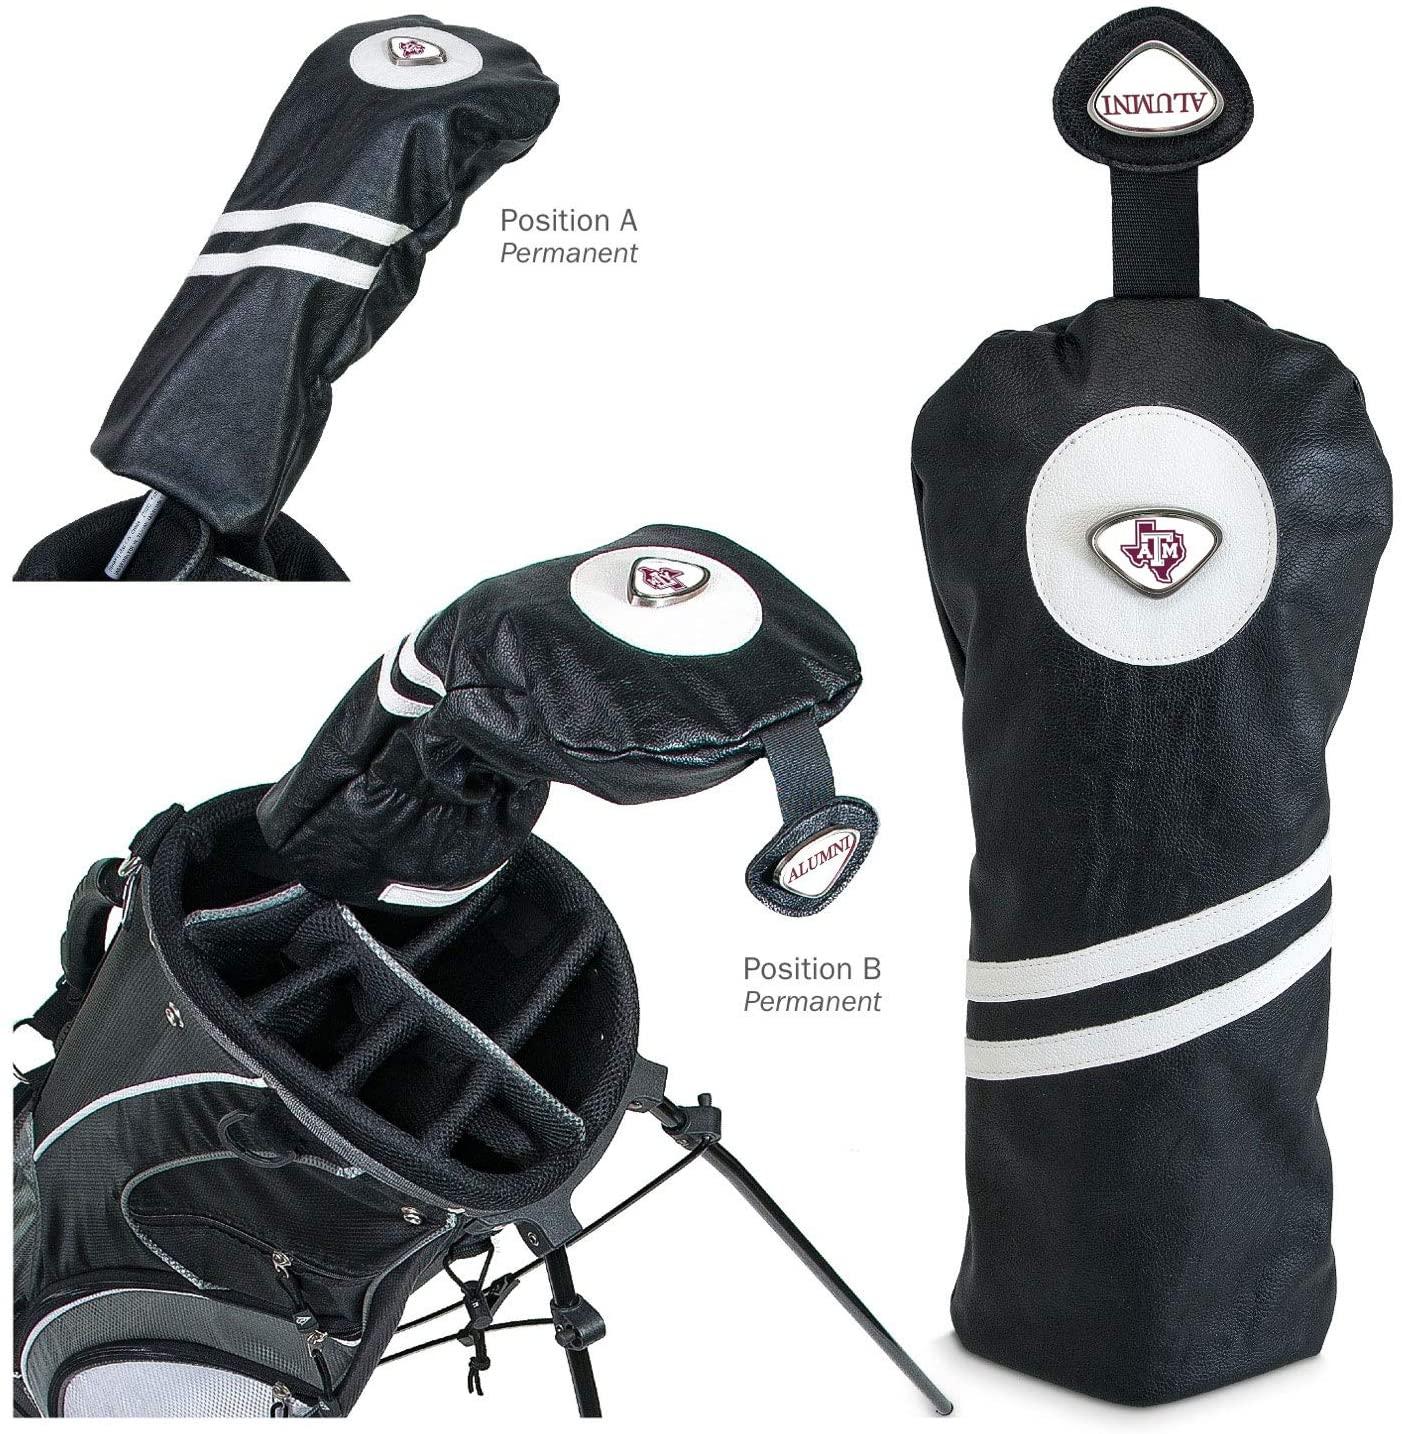 NCAA Texas A&M Aggies Collegiate Driver HeadcoverCollegiate Driver Headcover, Black, One Size